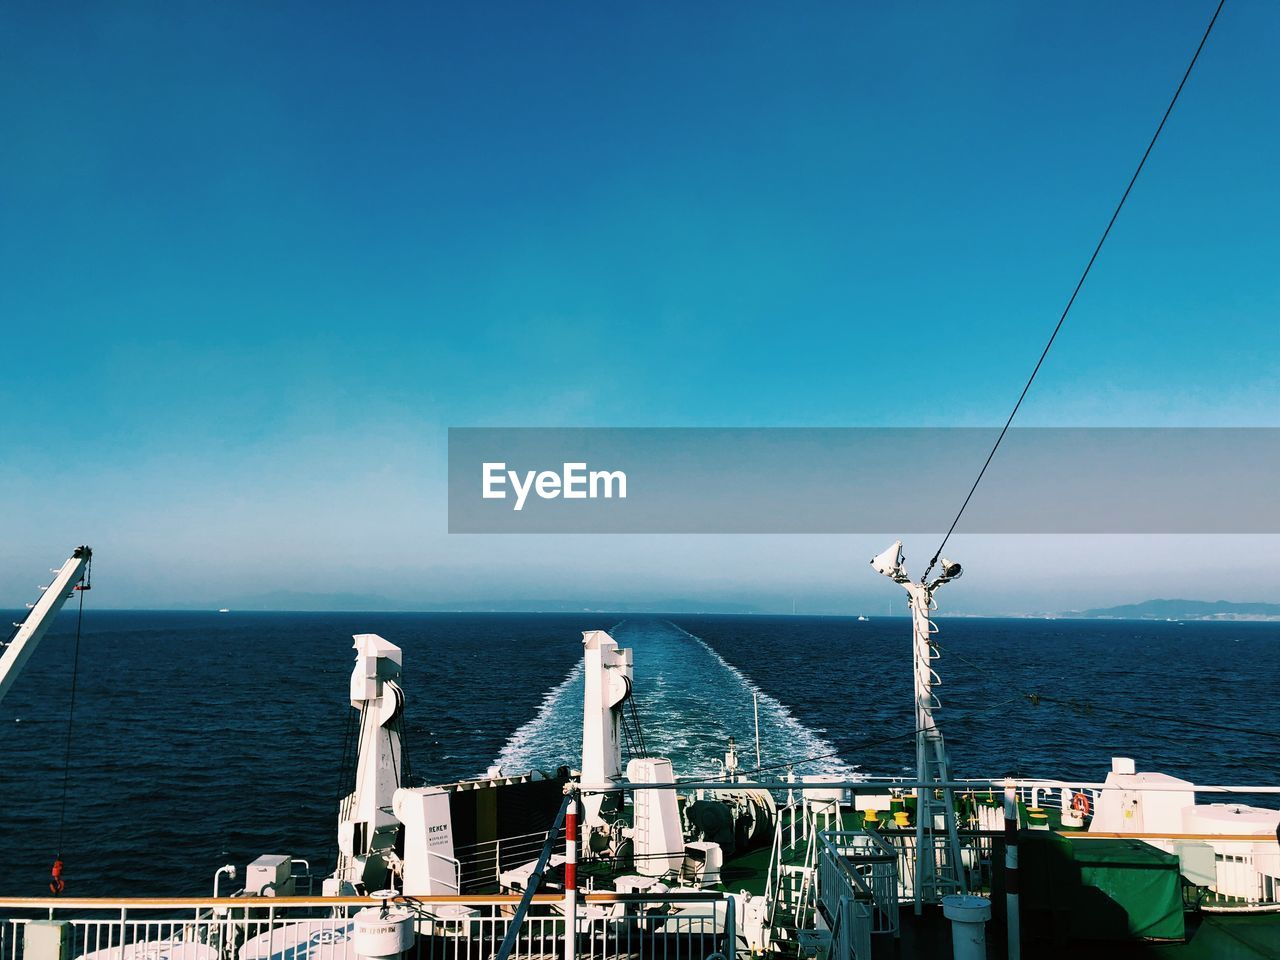 sea, water, sky, horizon over water, horizon, blue, transportation, day, nature, beauty in nature, nautical vessel, mode of transportation, architecture, built structure, scenics - nature, outdoors, no people, copy space, sunlight